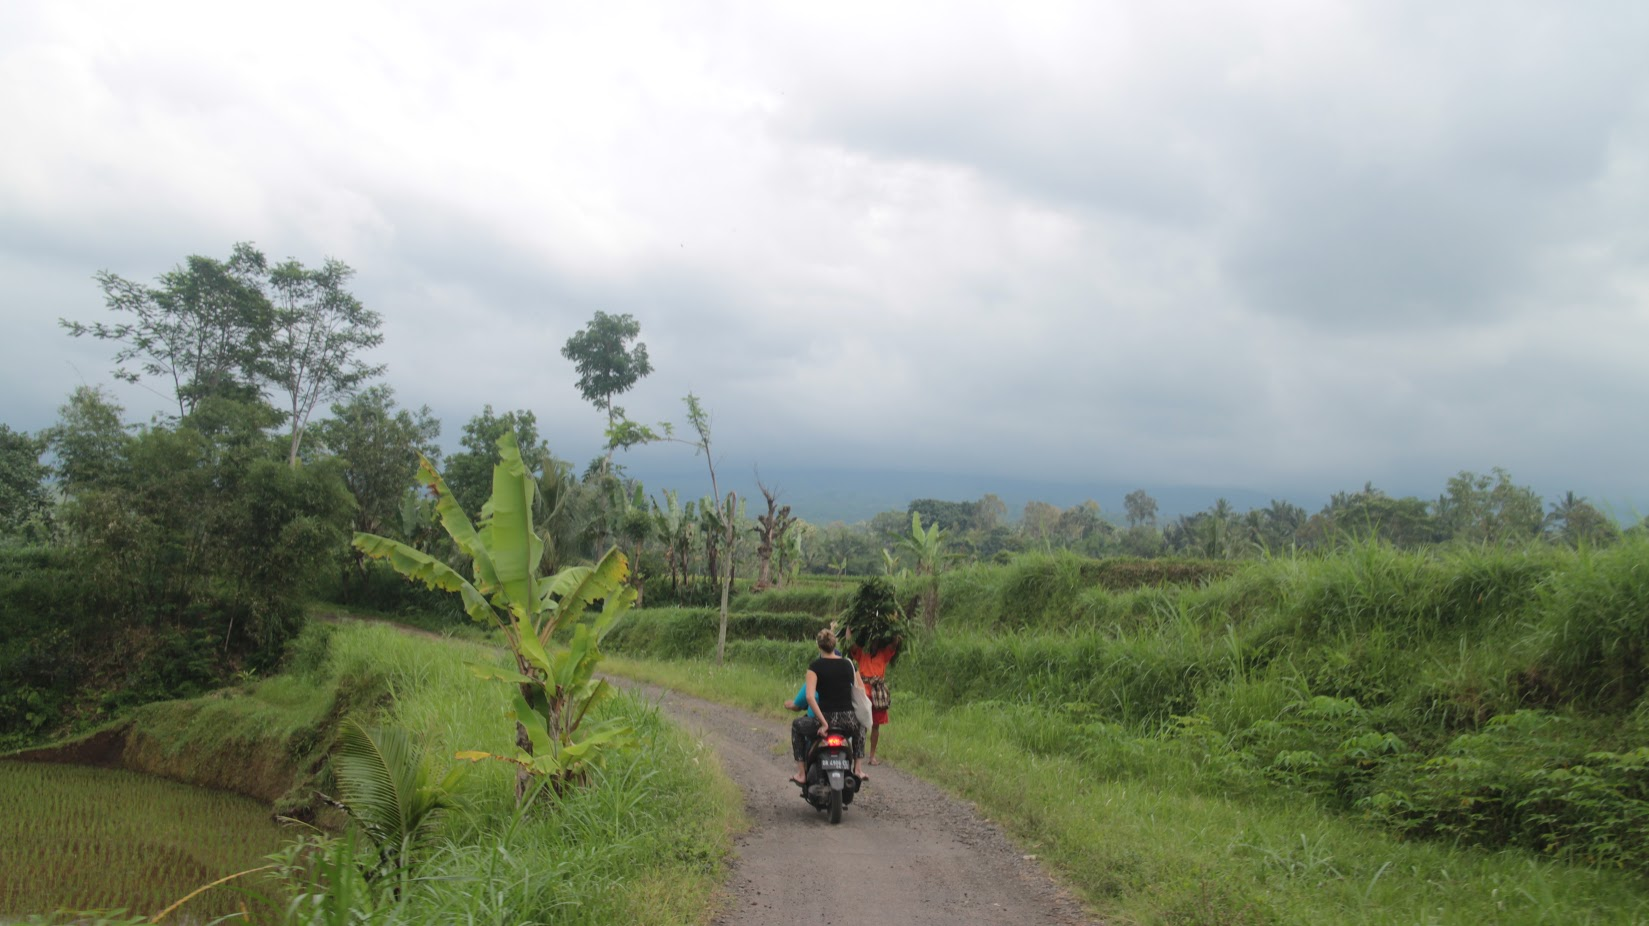 The fastest and the most scenic way to get around in Bali and Lombok is to rent a motorcycle. Take a tour around the island and visit multiple Duara villages on the way!